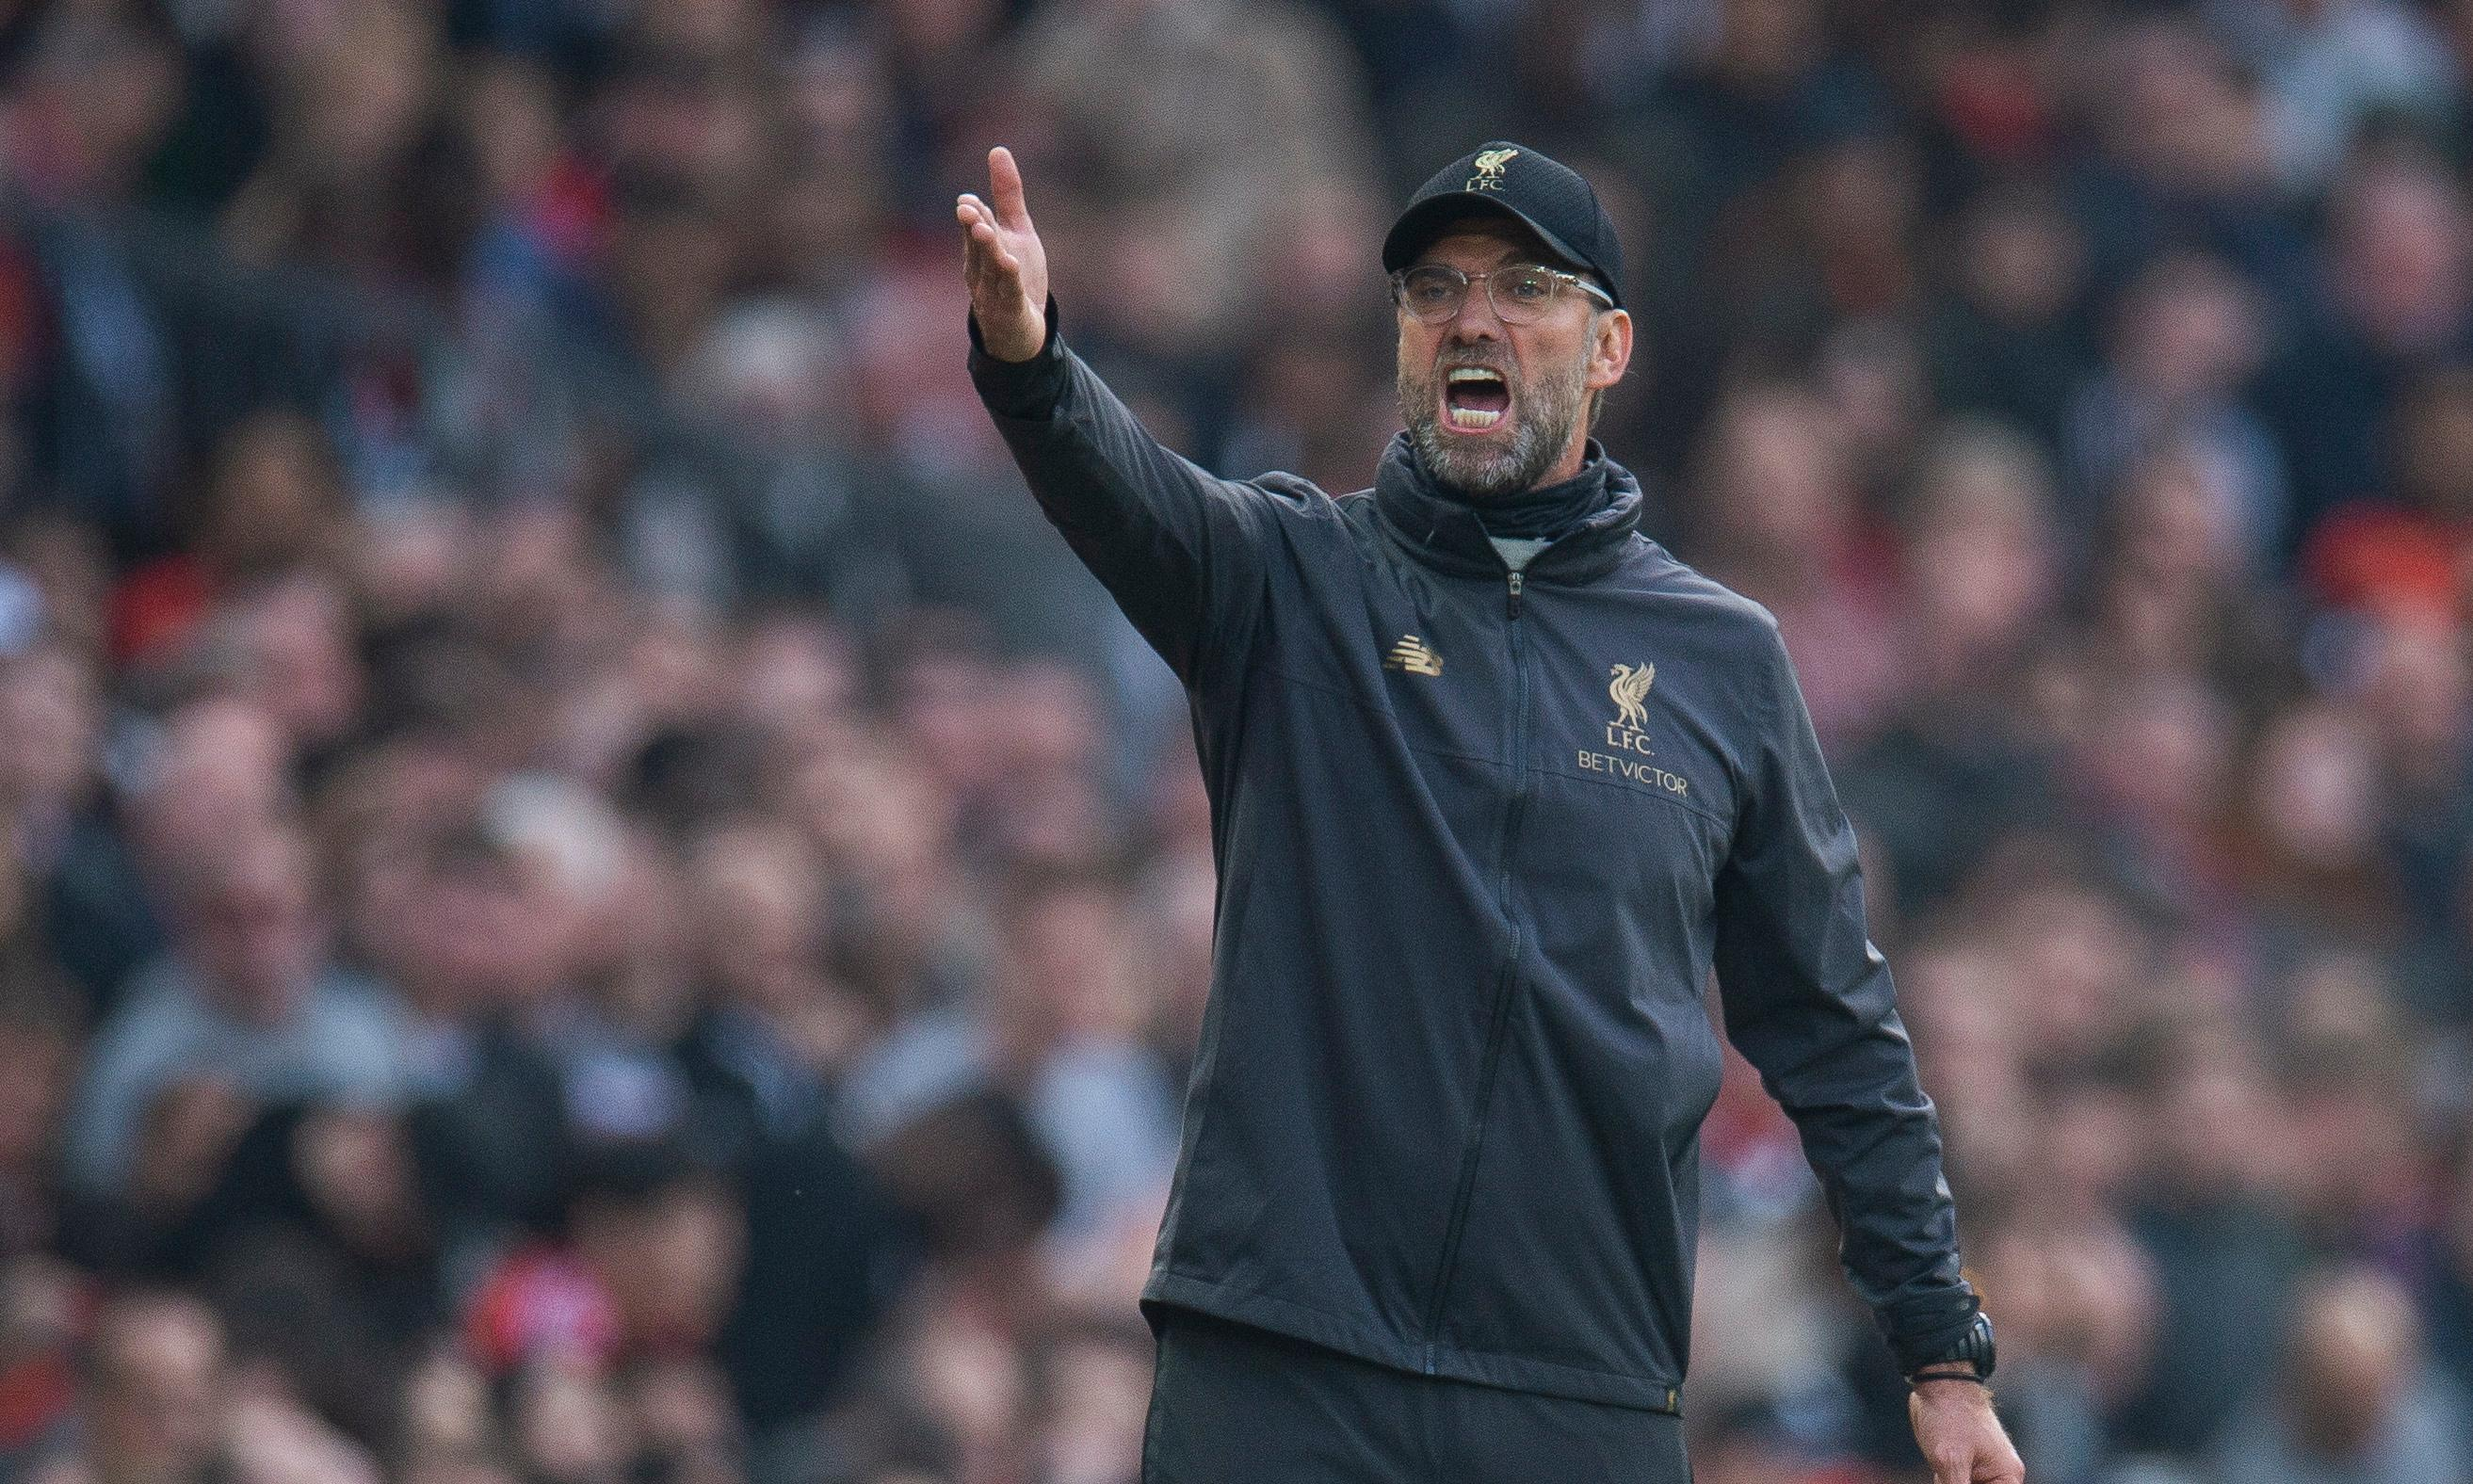 Jürgen Klopp dismisses 'insulting' coverage of Manchester United's travails